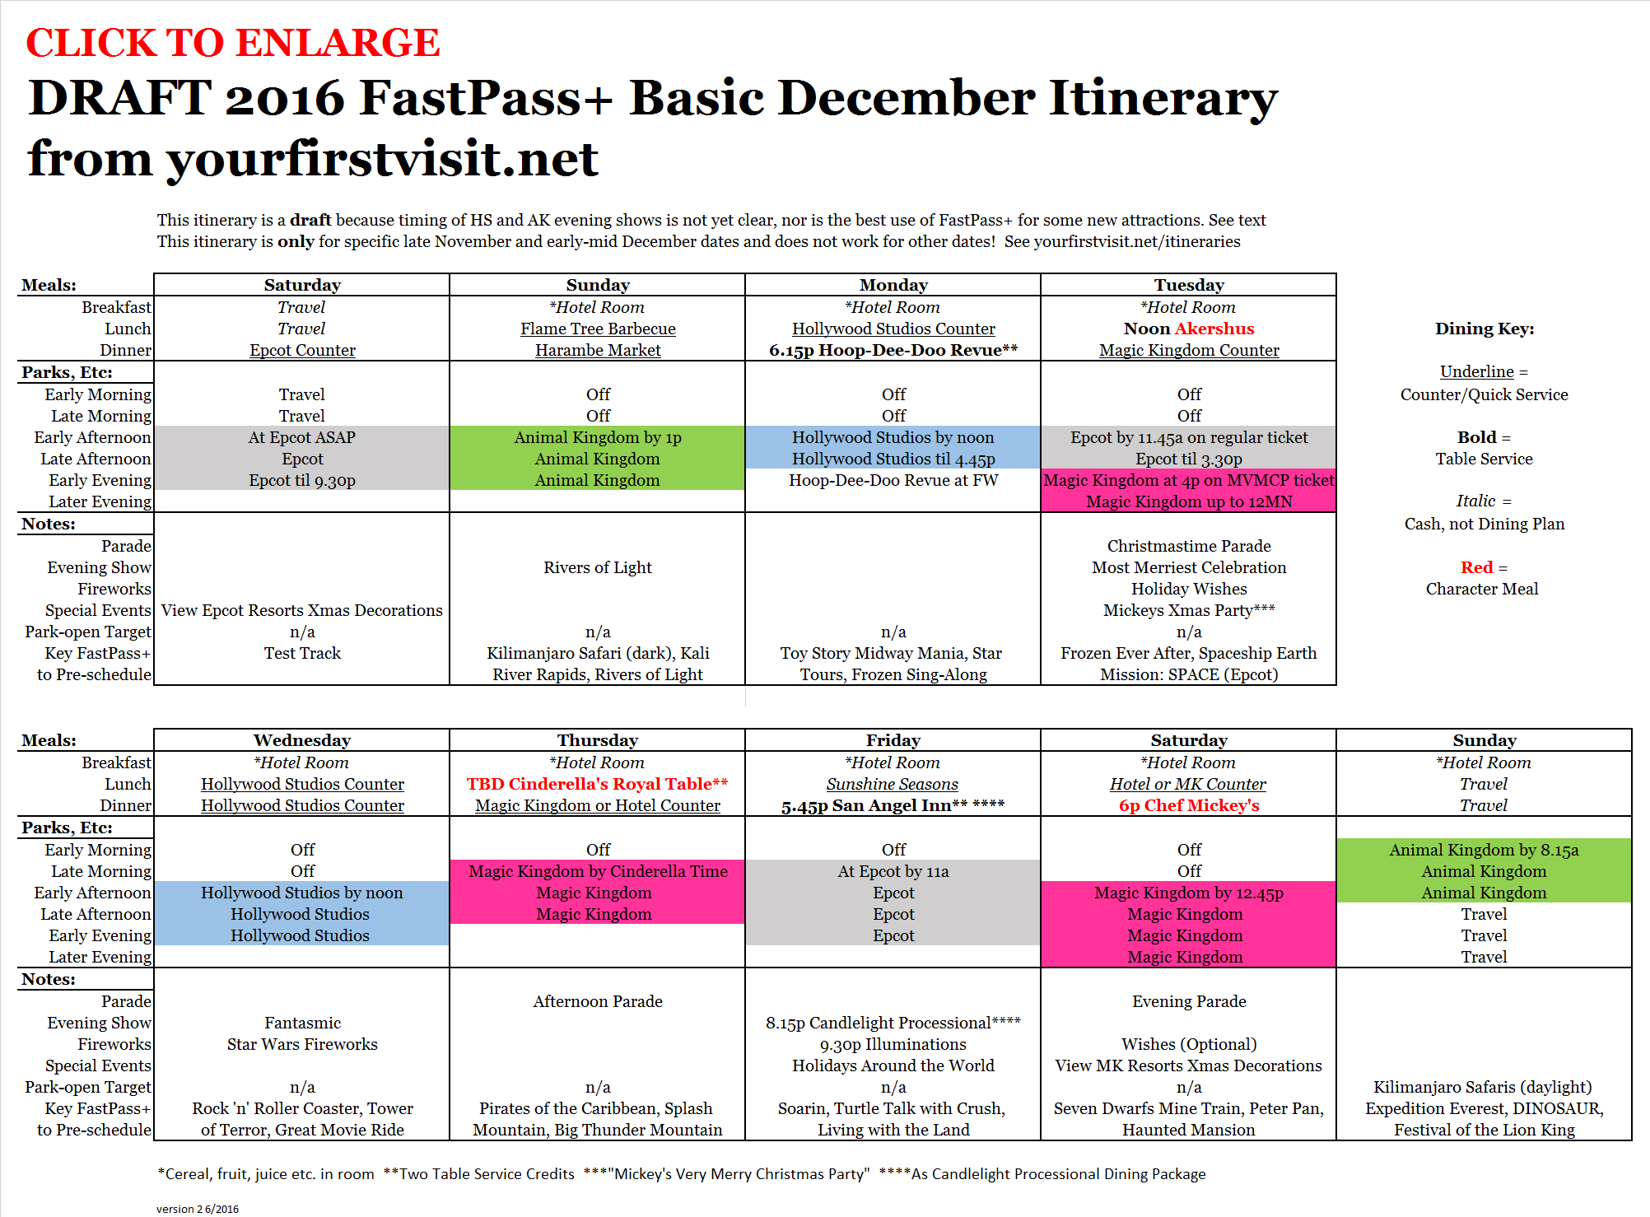 Basic December 2016 FastPass+ Itinerary v2 from yourfirstvisit.net